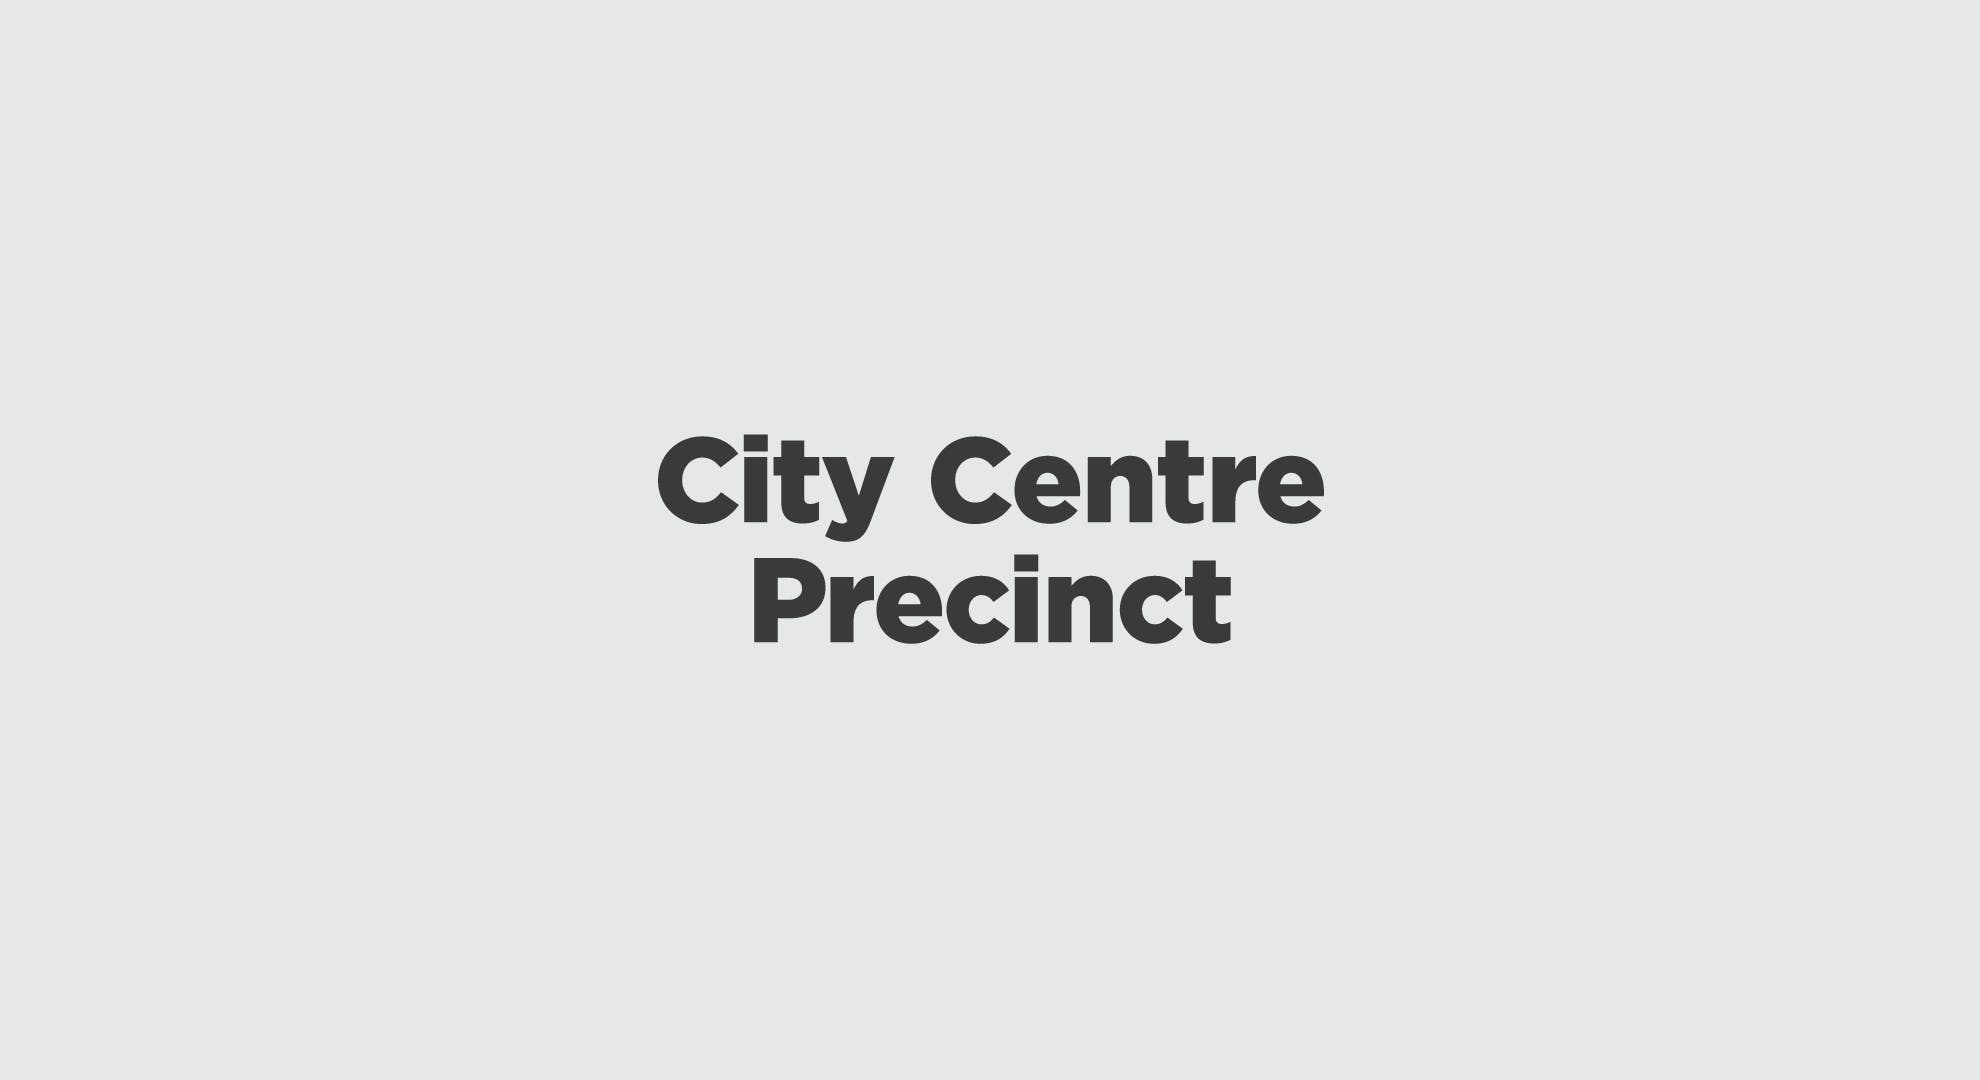 City Centre Precinct